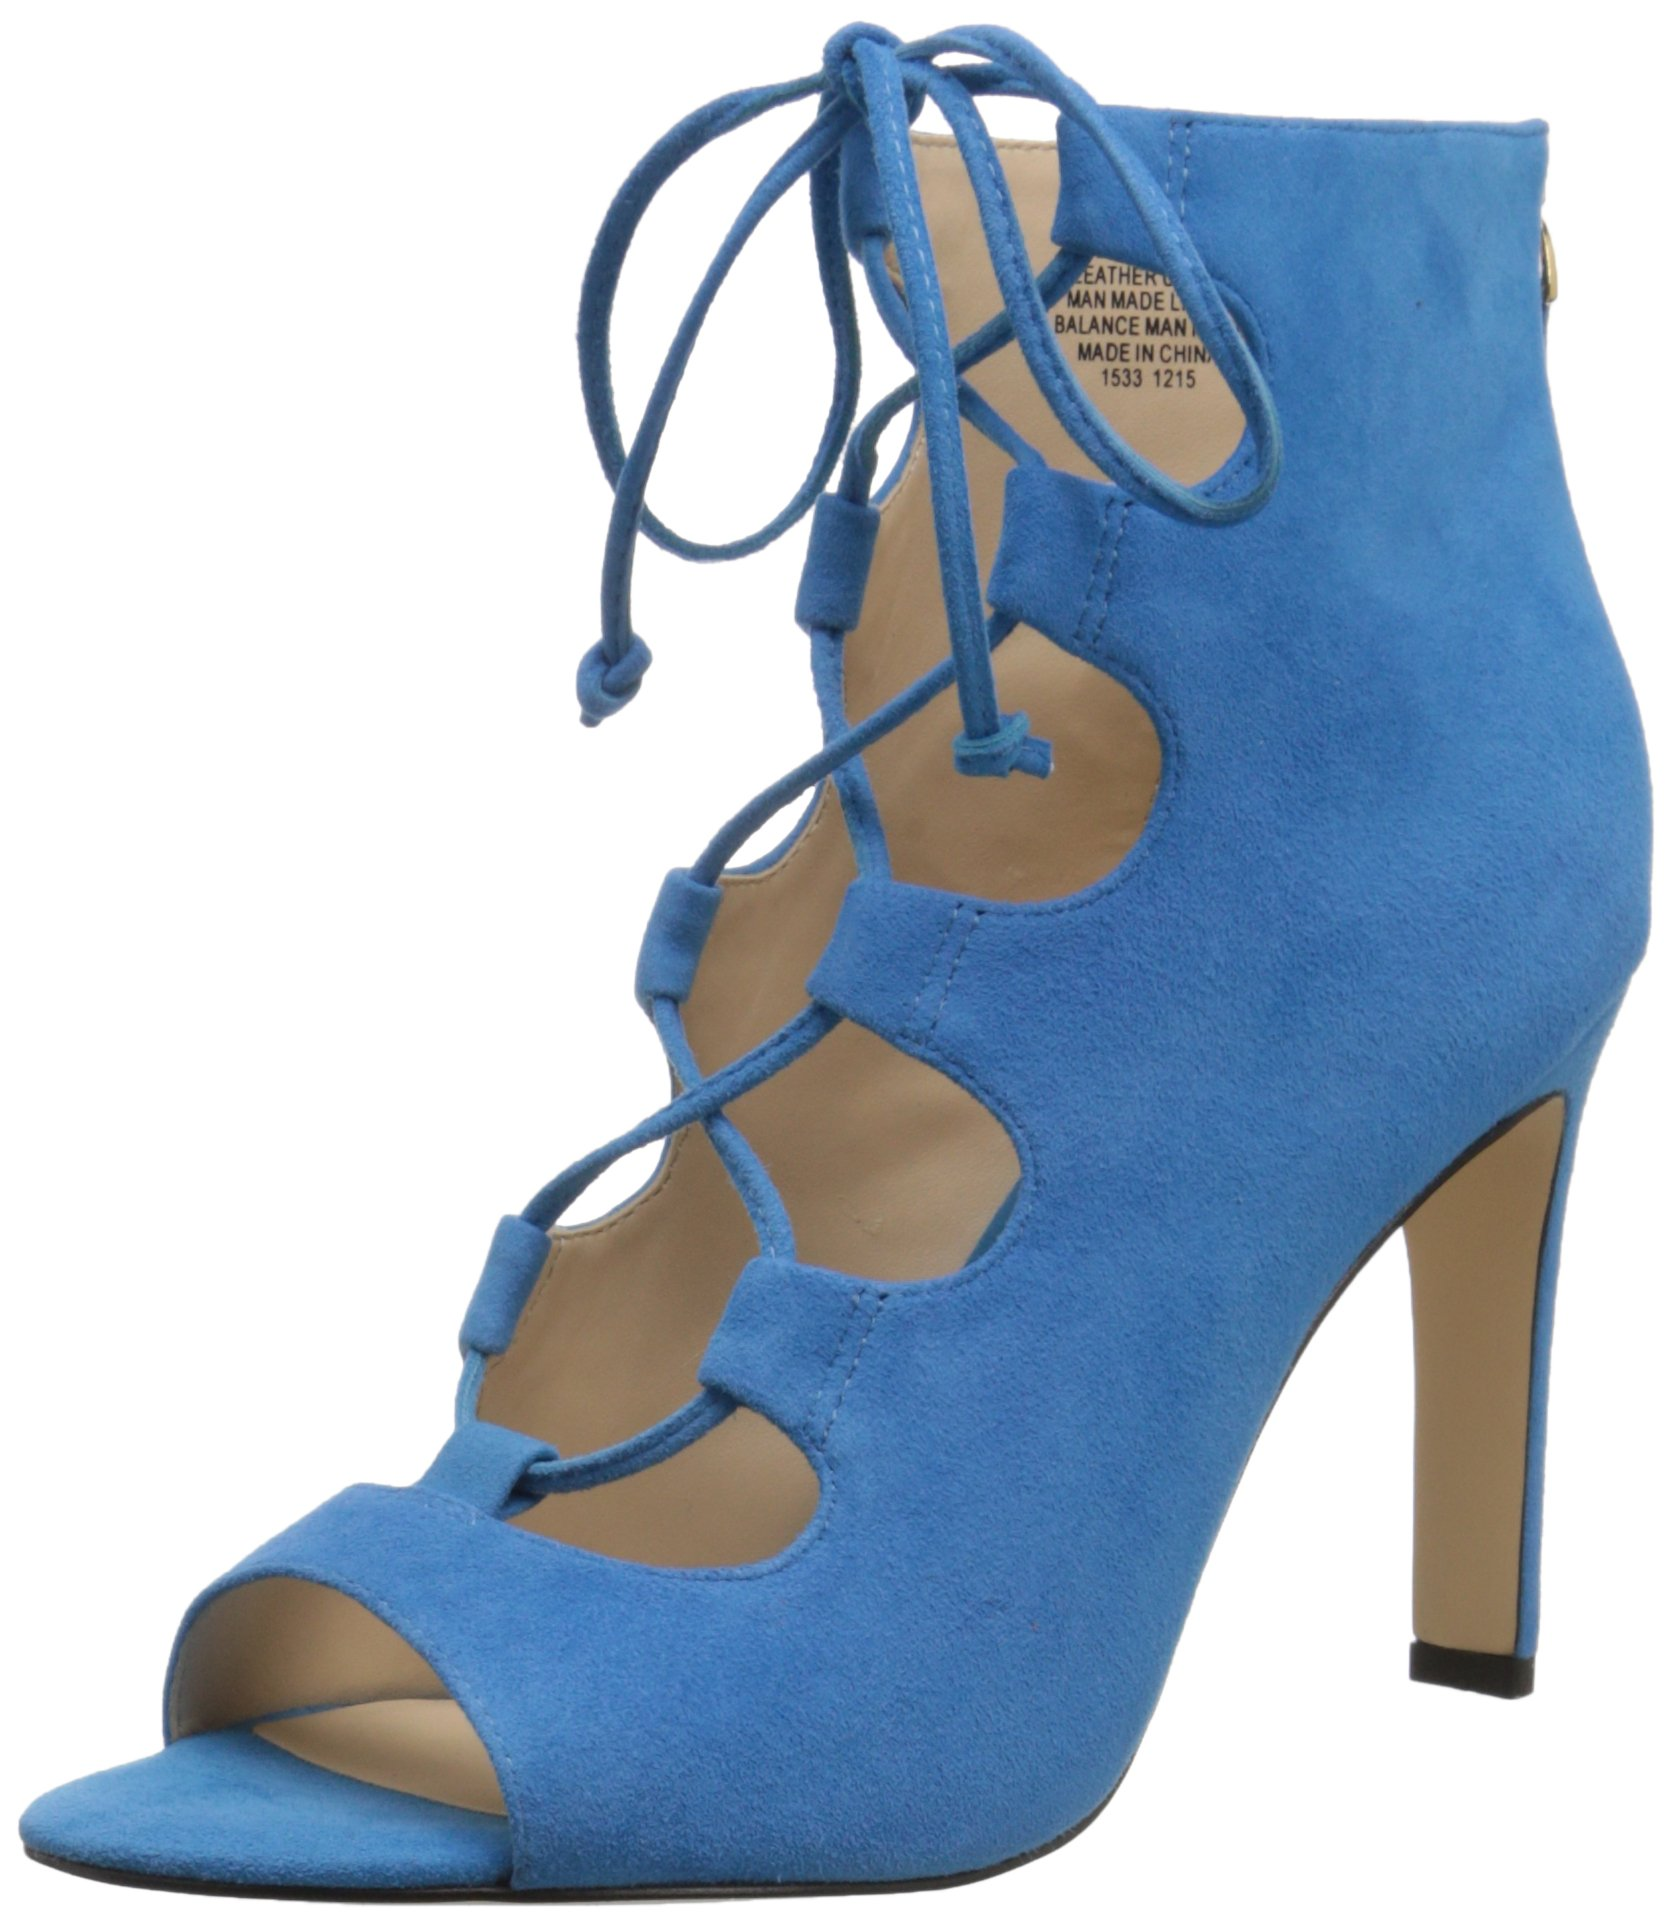 Nine West Women's Unfrgetabl Suede Dress Pump, Turquoise Suede, 5.5 M US